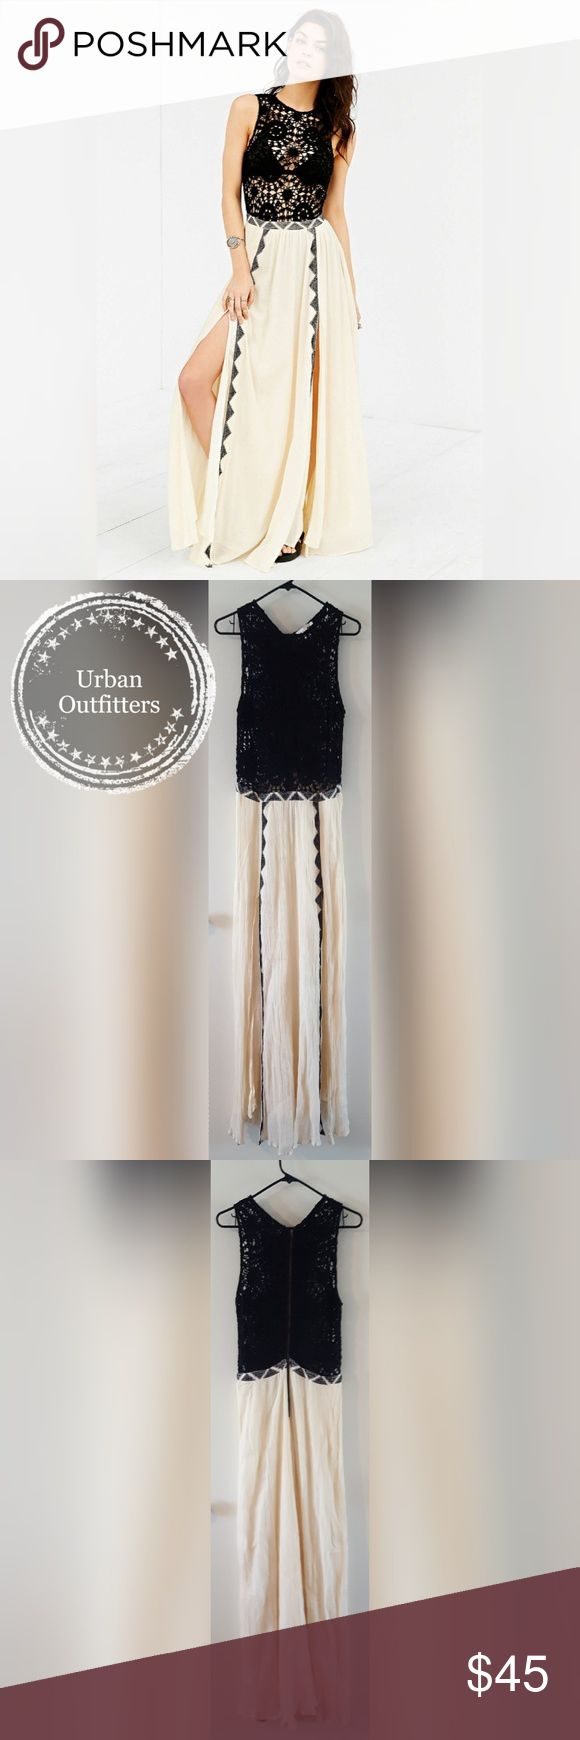 """Urban Outfitters Festival Maxi Black and cream colored crochet and gauze textured maxi dress. The front has a double slit, back closed with a metal zipper. EXCELLENT condition, sadly never worn. I was a bit too impulsive and bought it hoping it would fit, but it's a bit too small in the waist. Waist measures approximately 32"""". Urban Outfitters Dresses Maxi"""